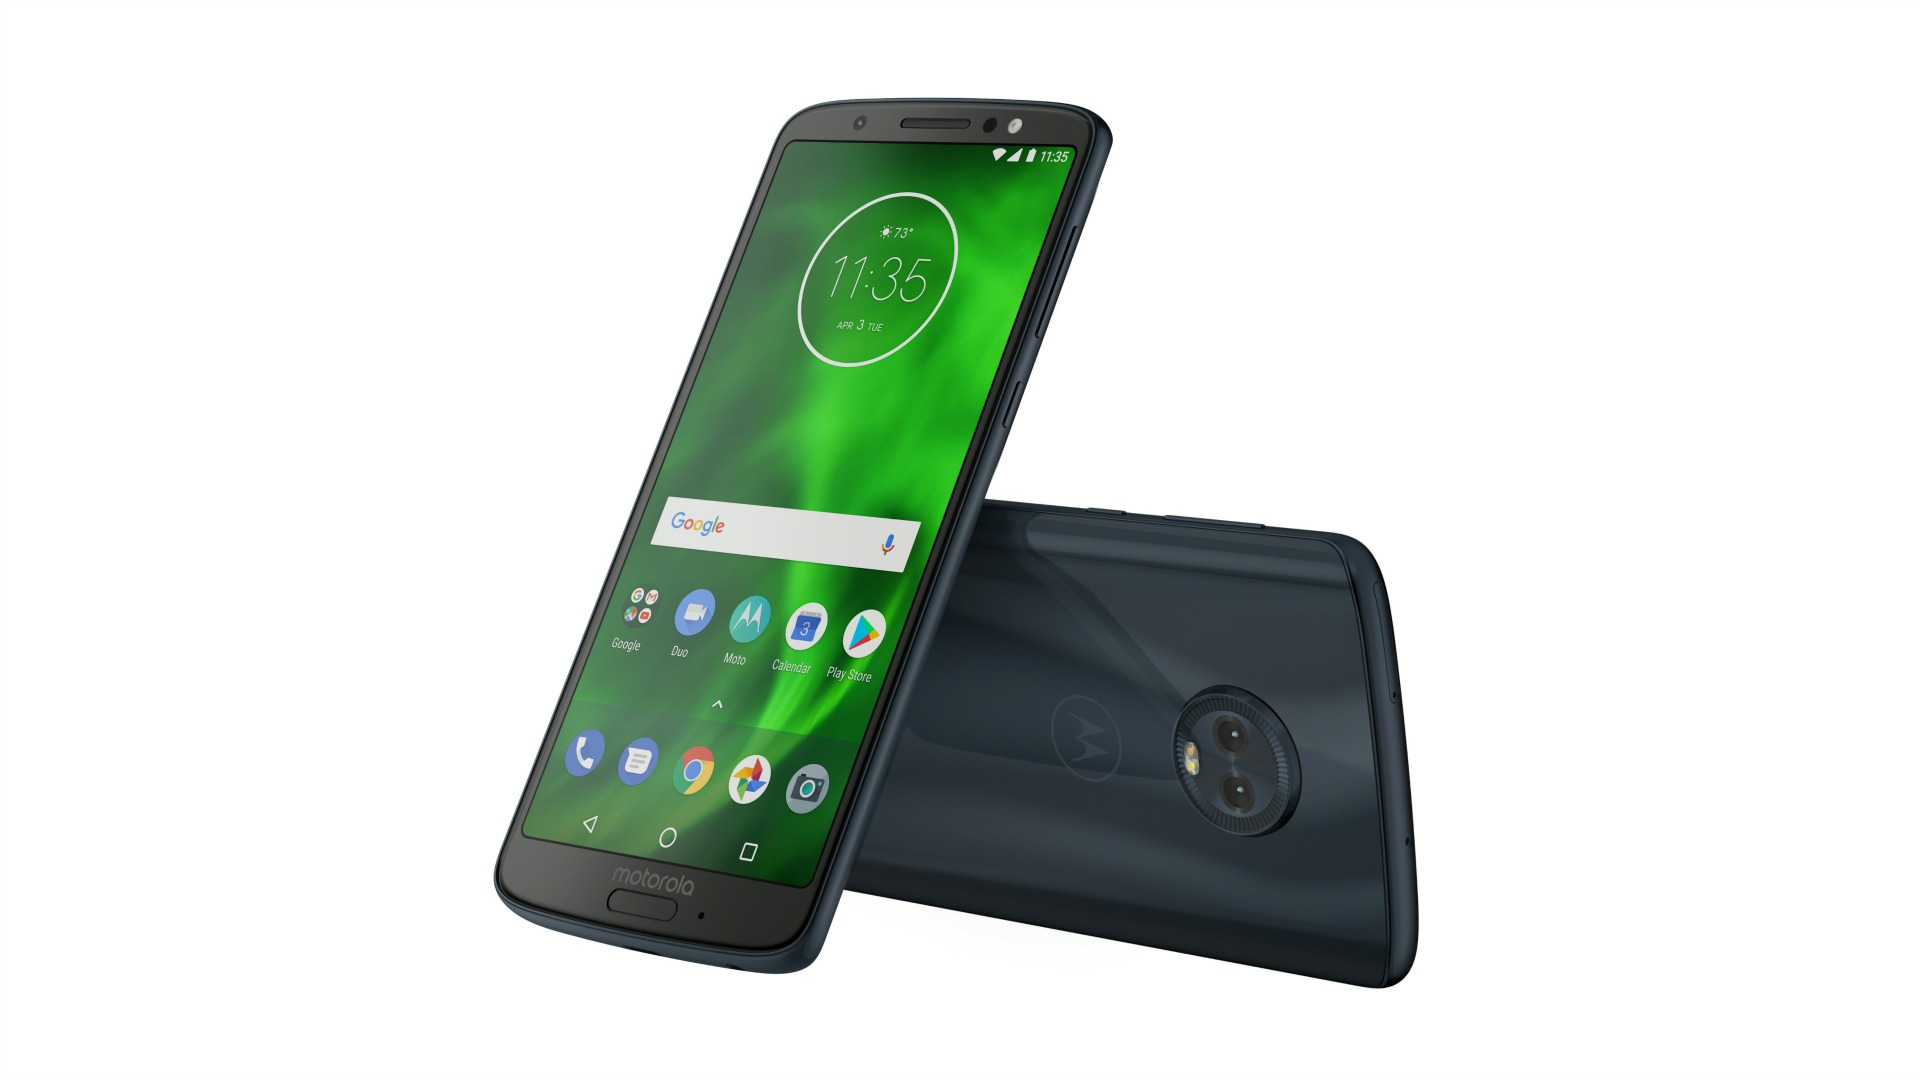 Motorola Moto C2 and C2 Plus appears in the fresh Renders